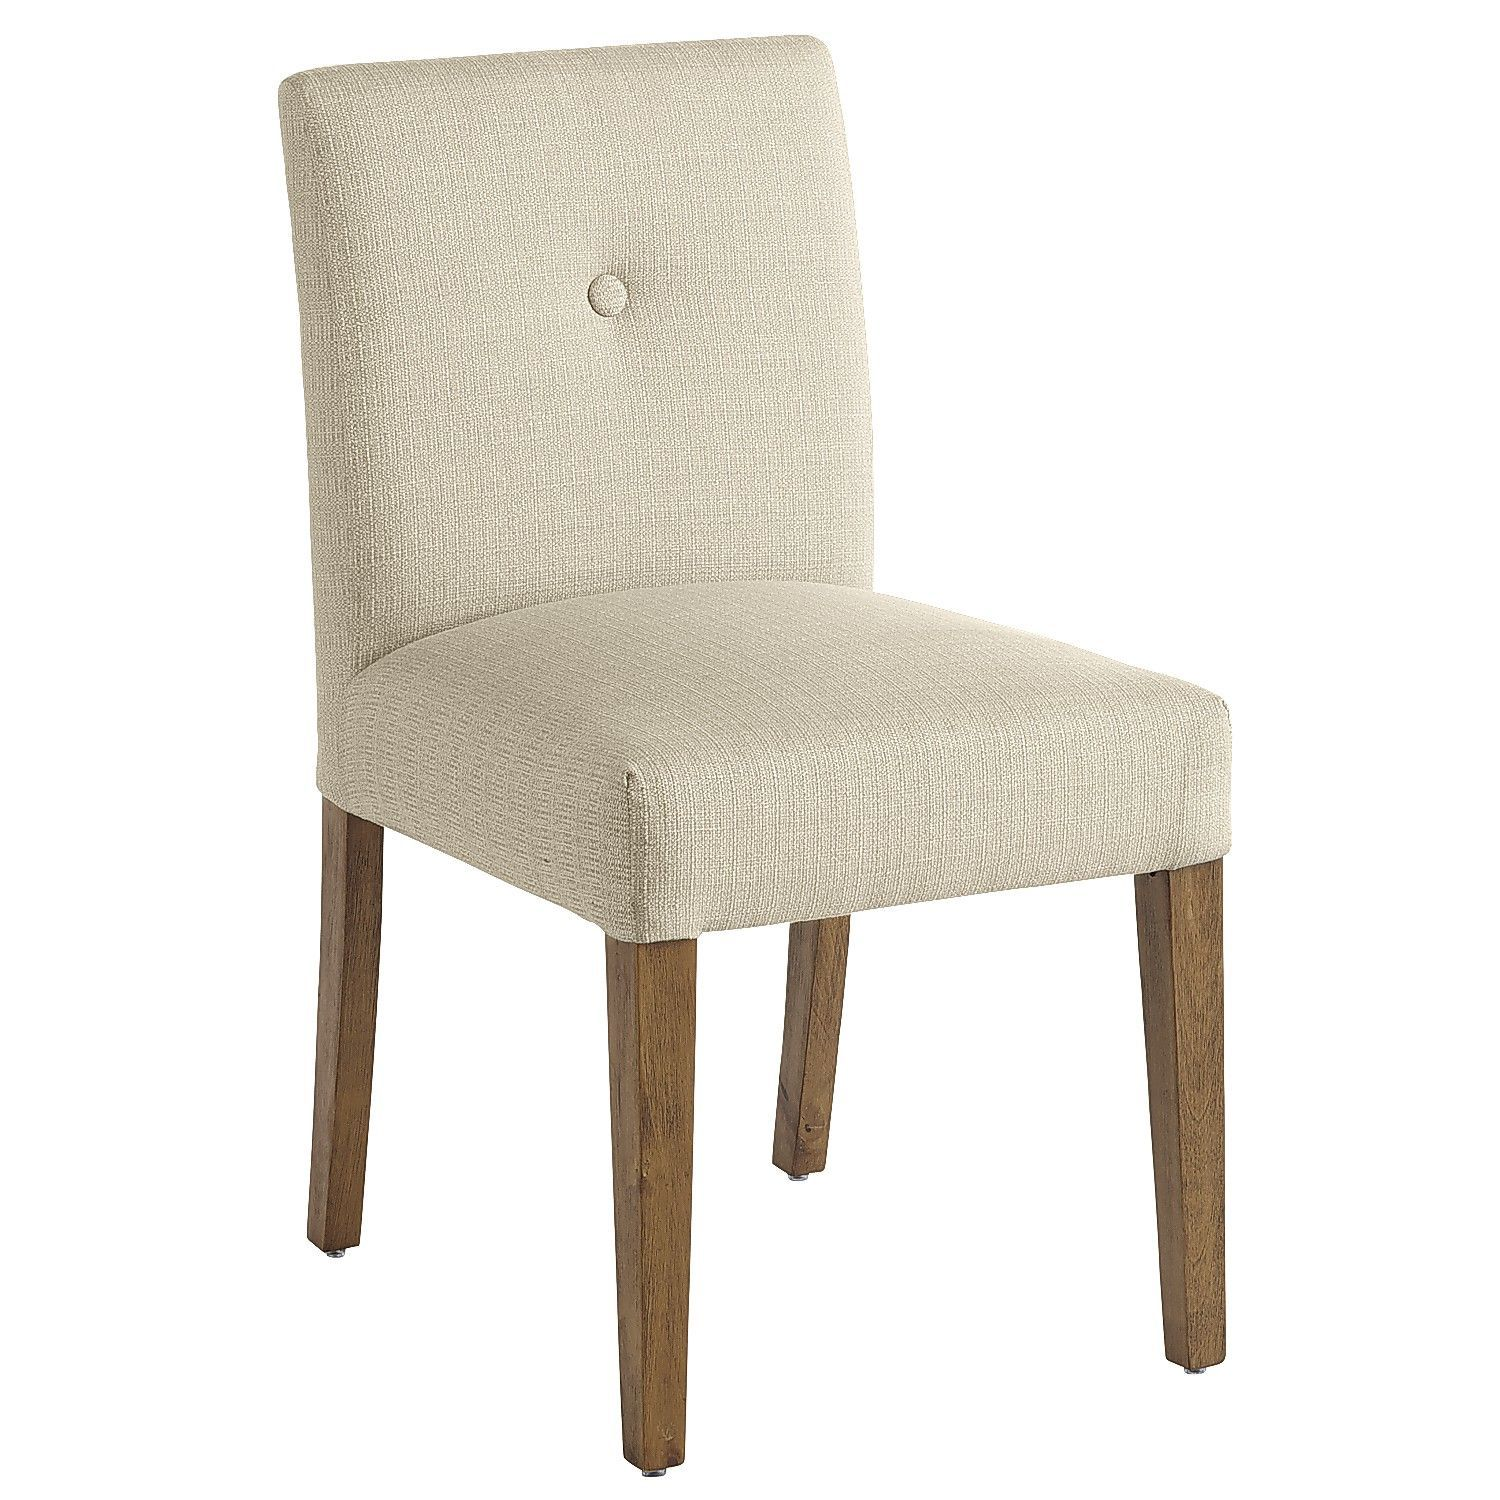 Low Back Dining Room Chairs Natural Mattie Low Back Dining Chair Flax Birch Chairs